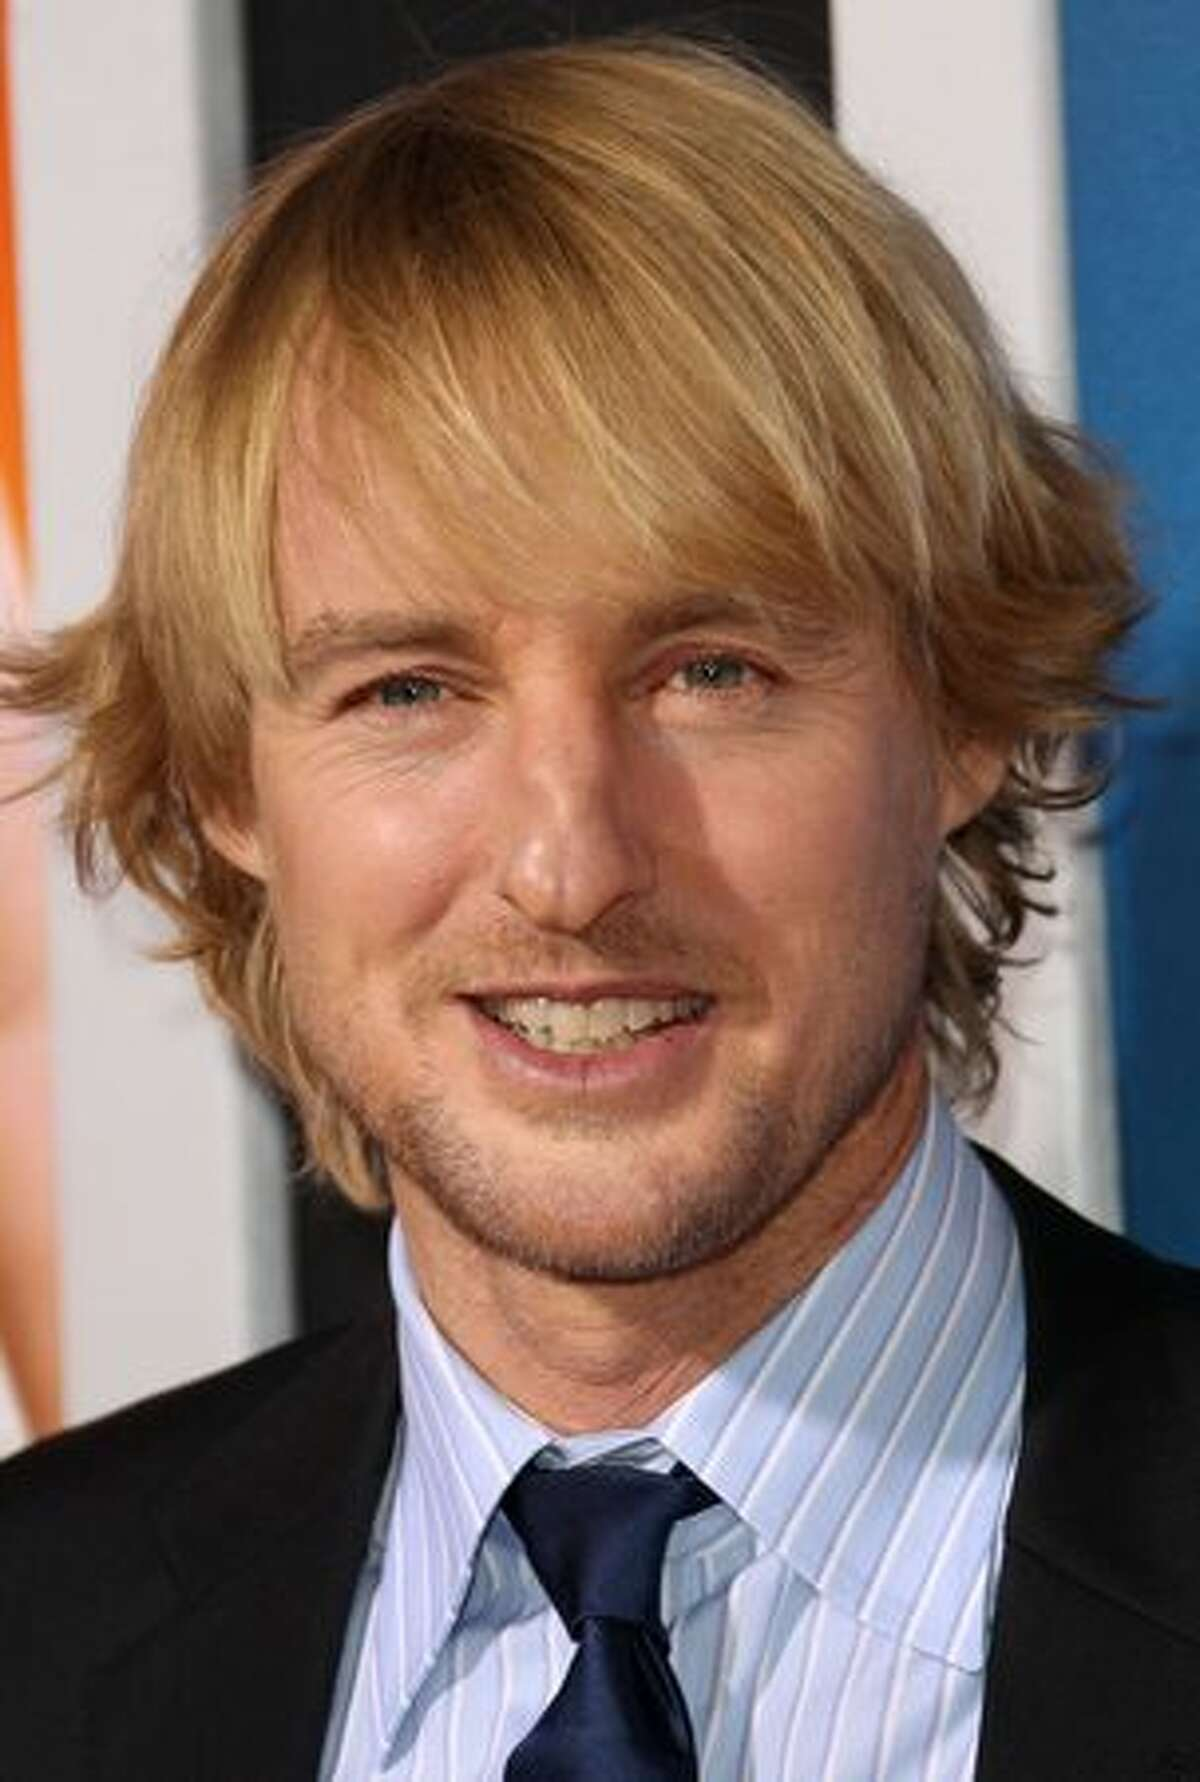 Actor Owen Wilson attends the premiere of Warner Brothers'